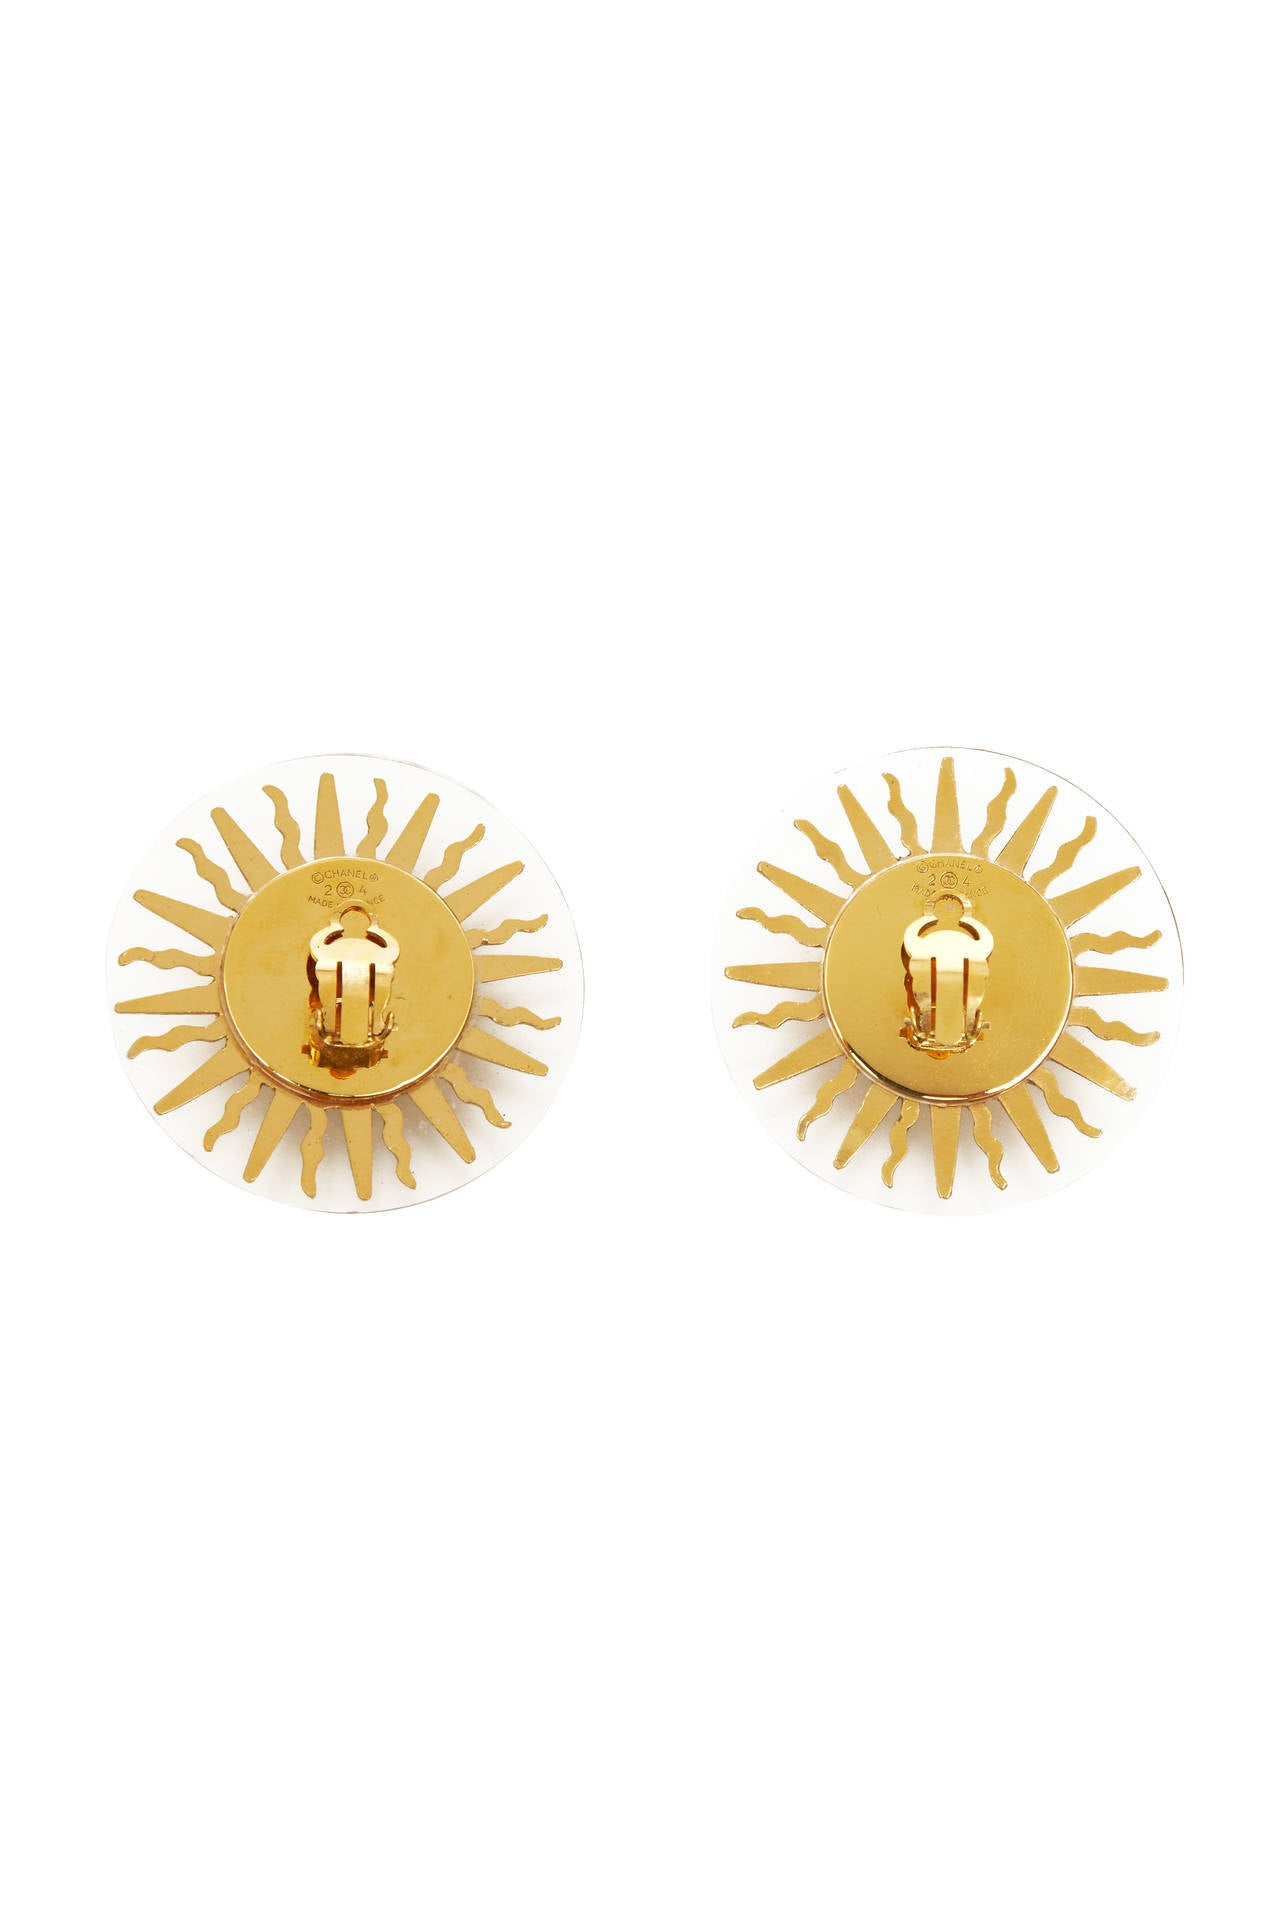 Fabulous Chanel clip on earrings consisting of clear resin disc with gold tone metal sun decoration.  They are marked on the back as being from season 24 dating them 1985.  Loads of fun for any occasion, they are in excellent